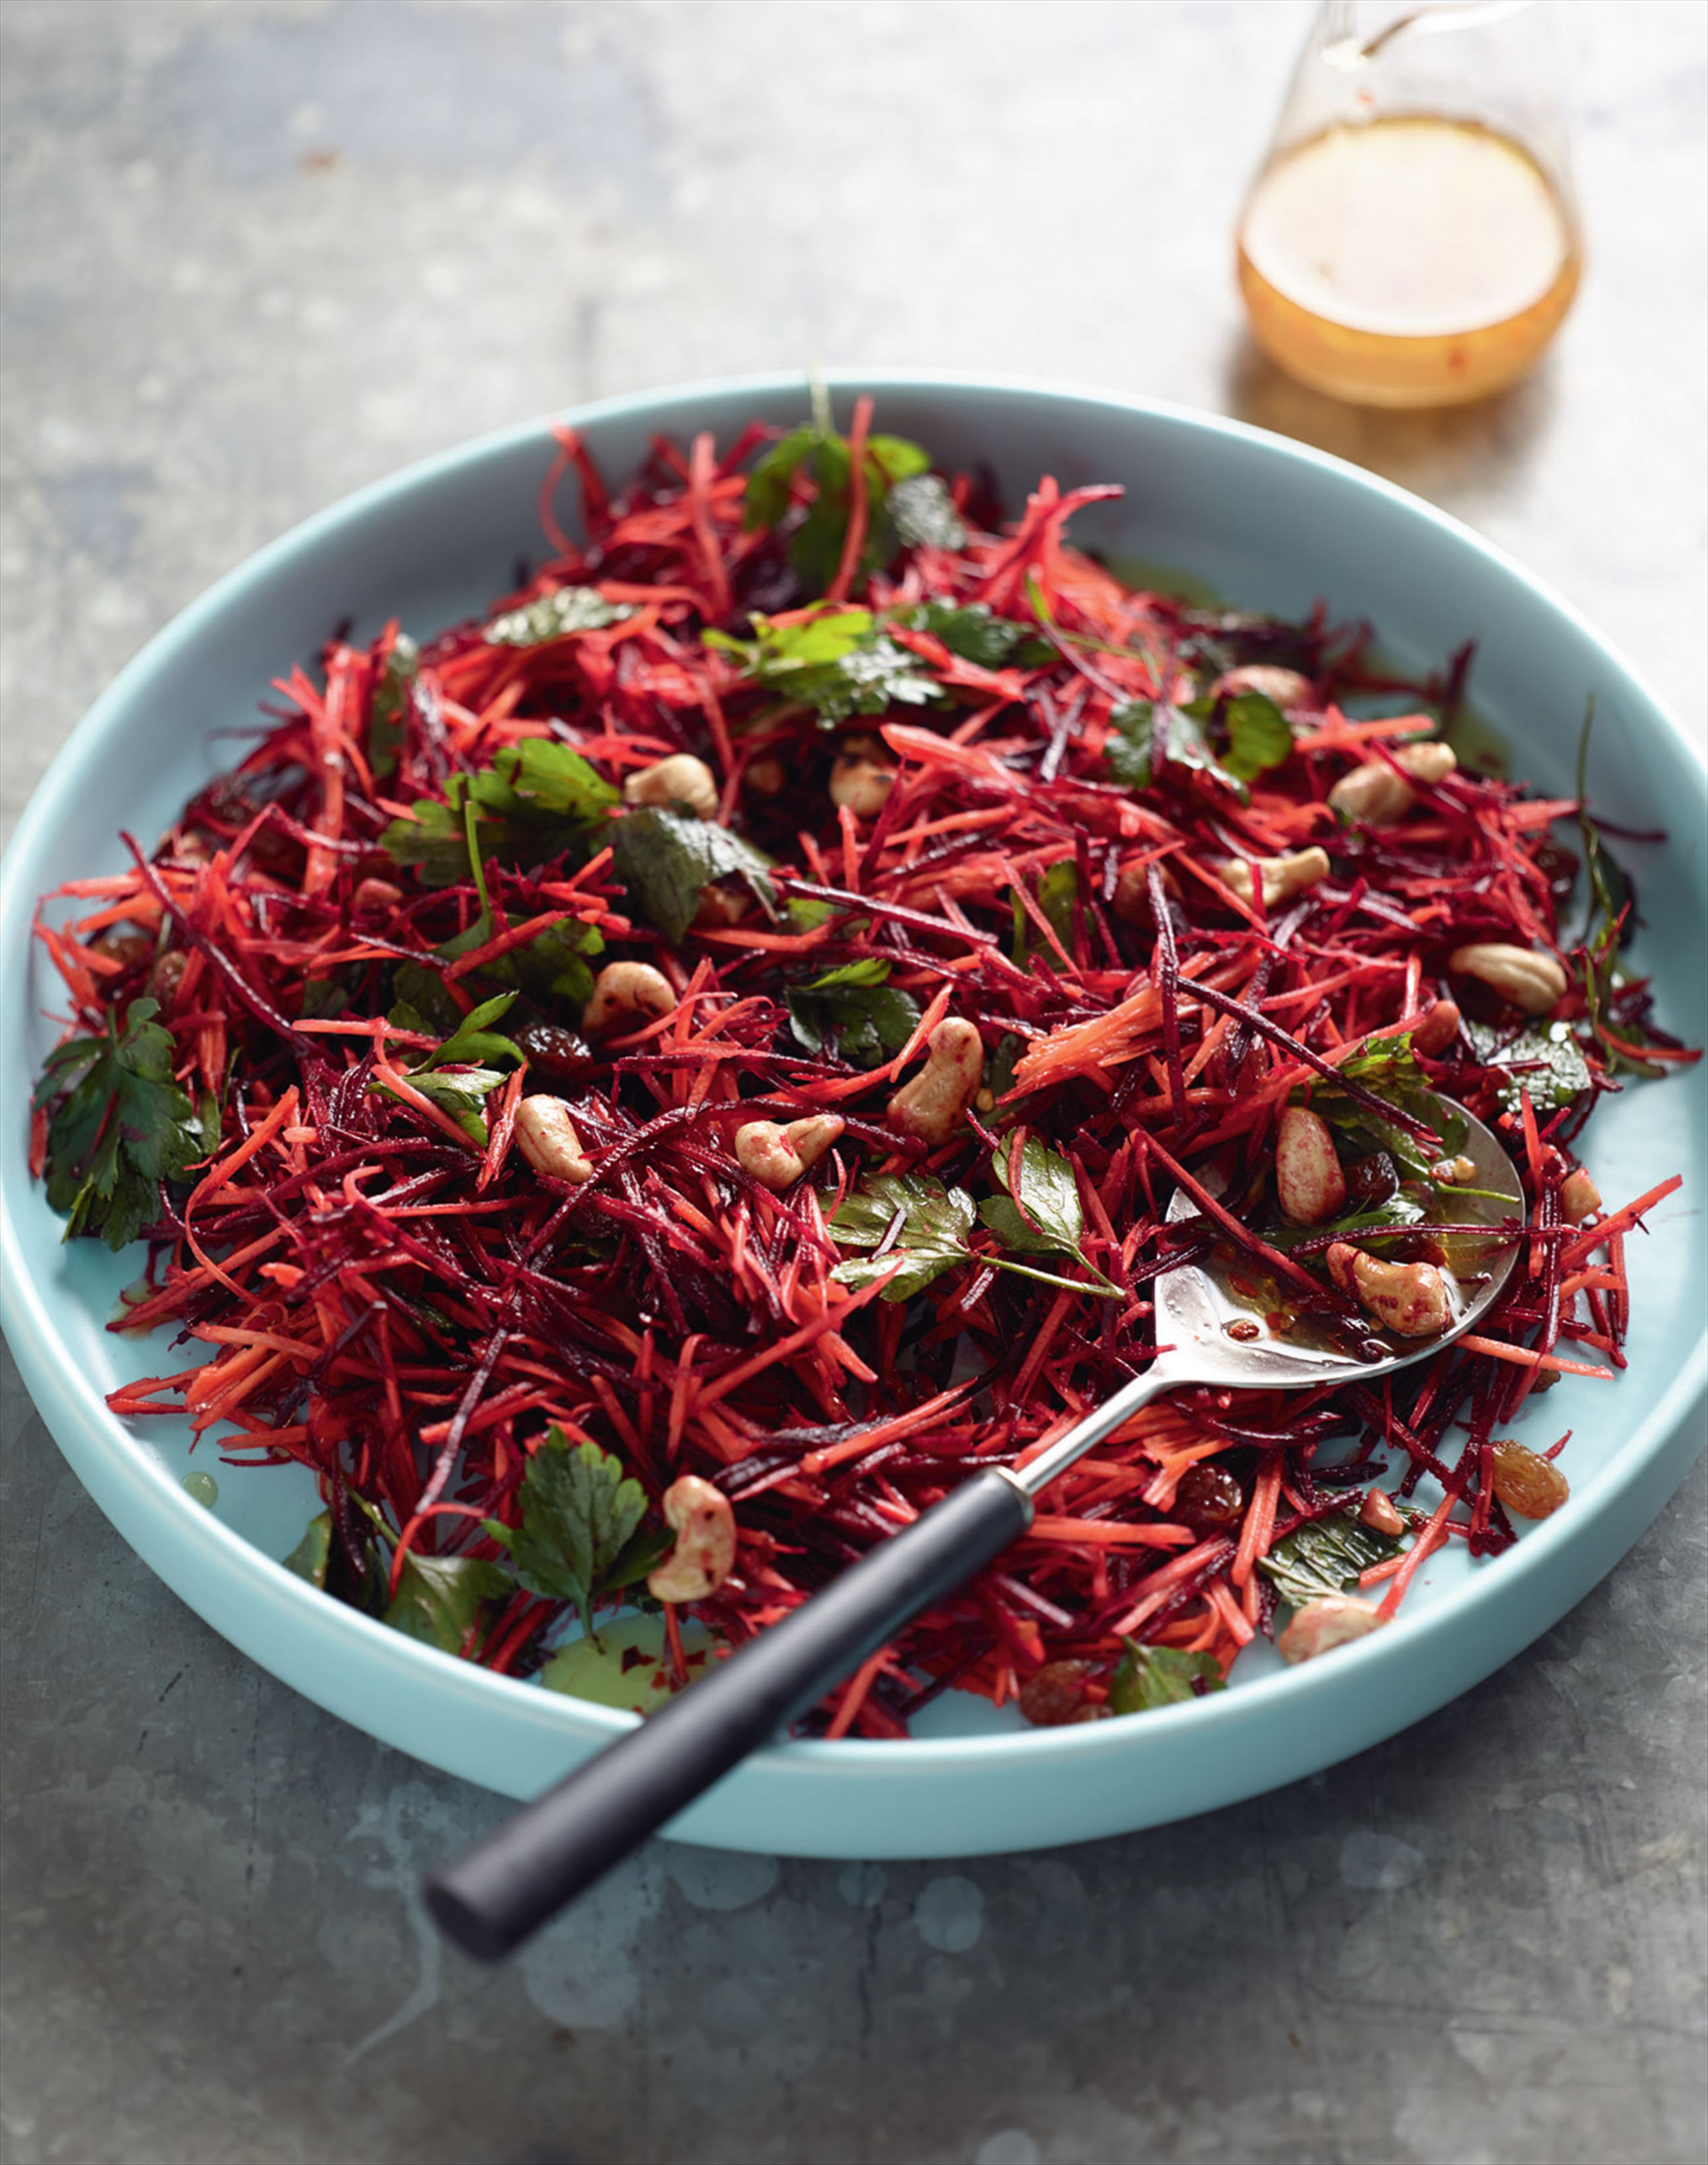 Beetroot and carrot salad with cashews